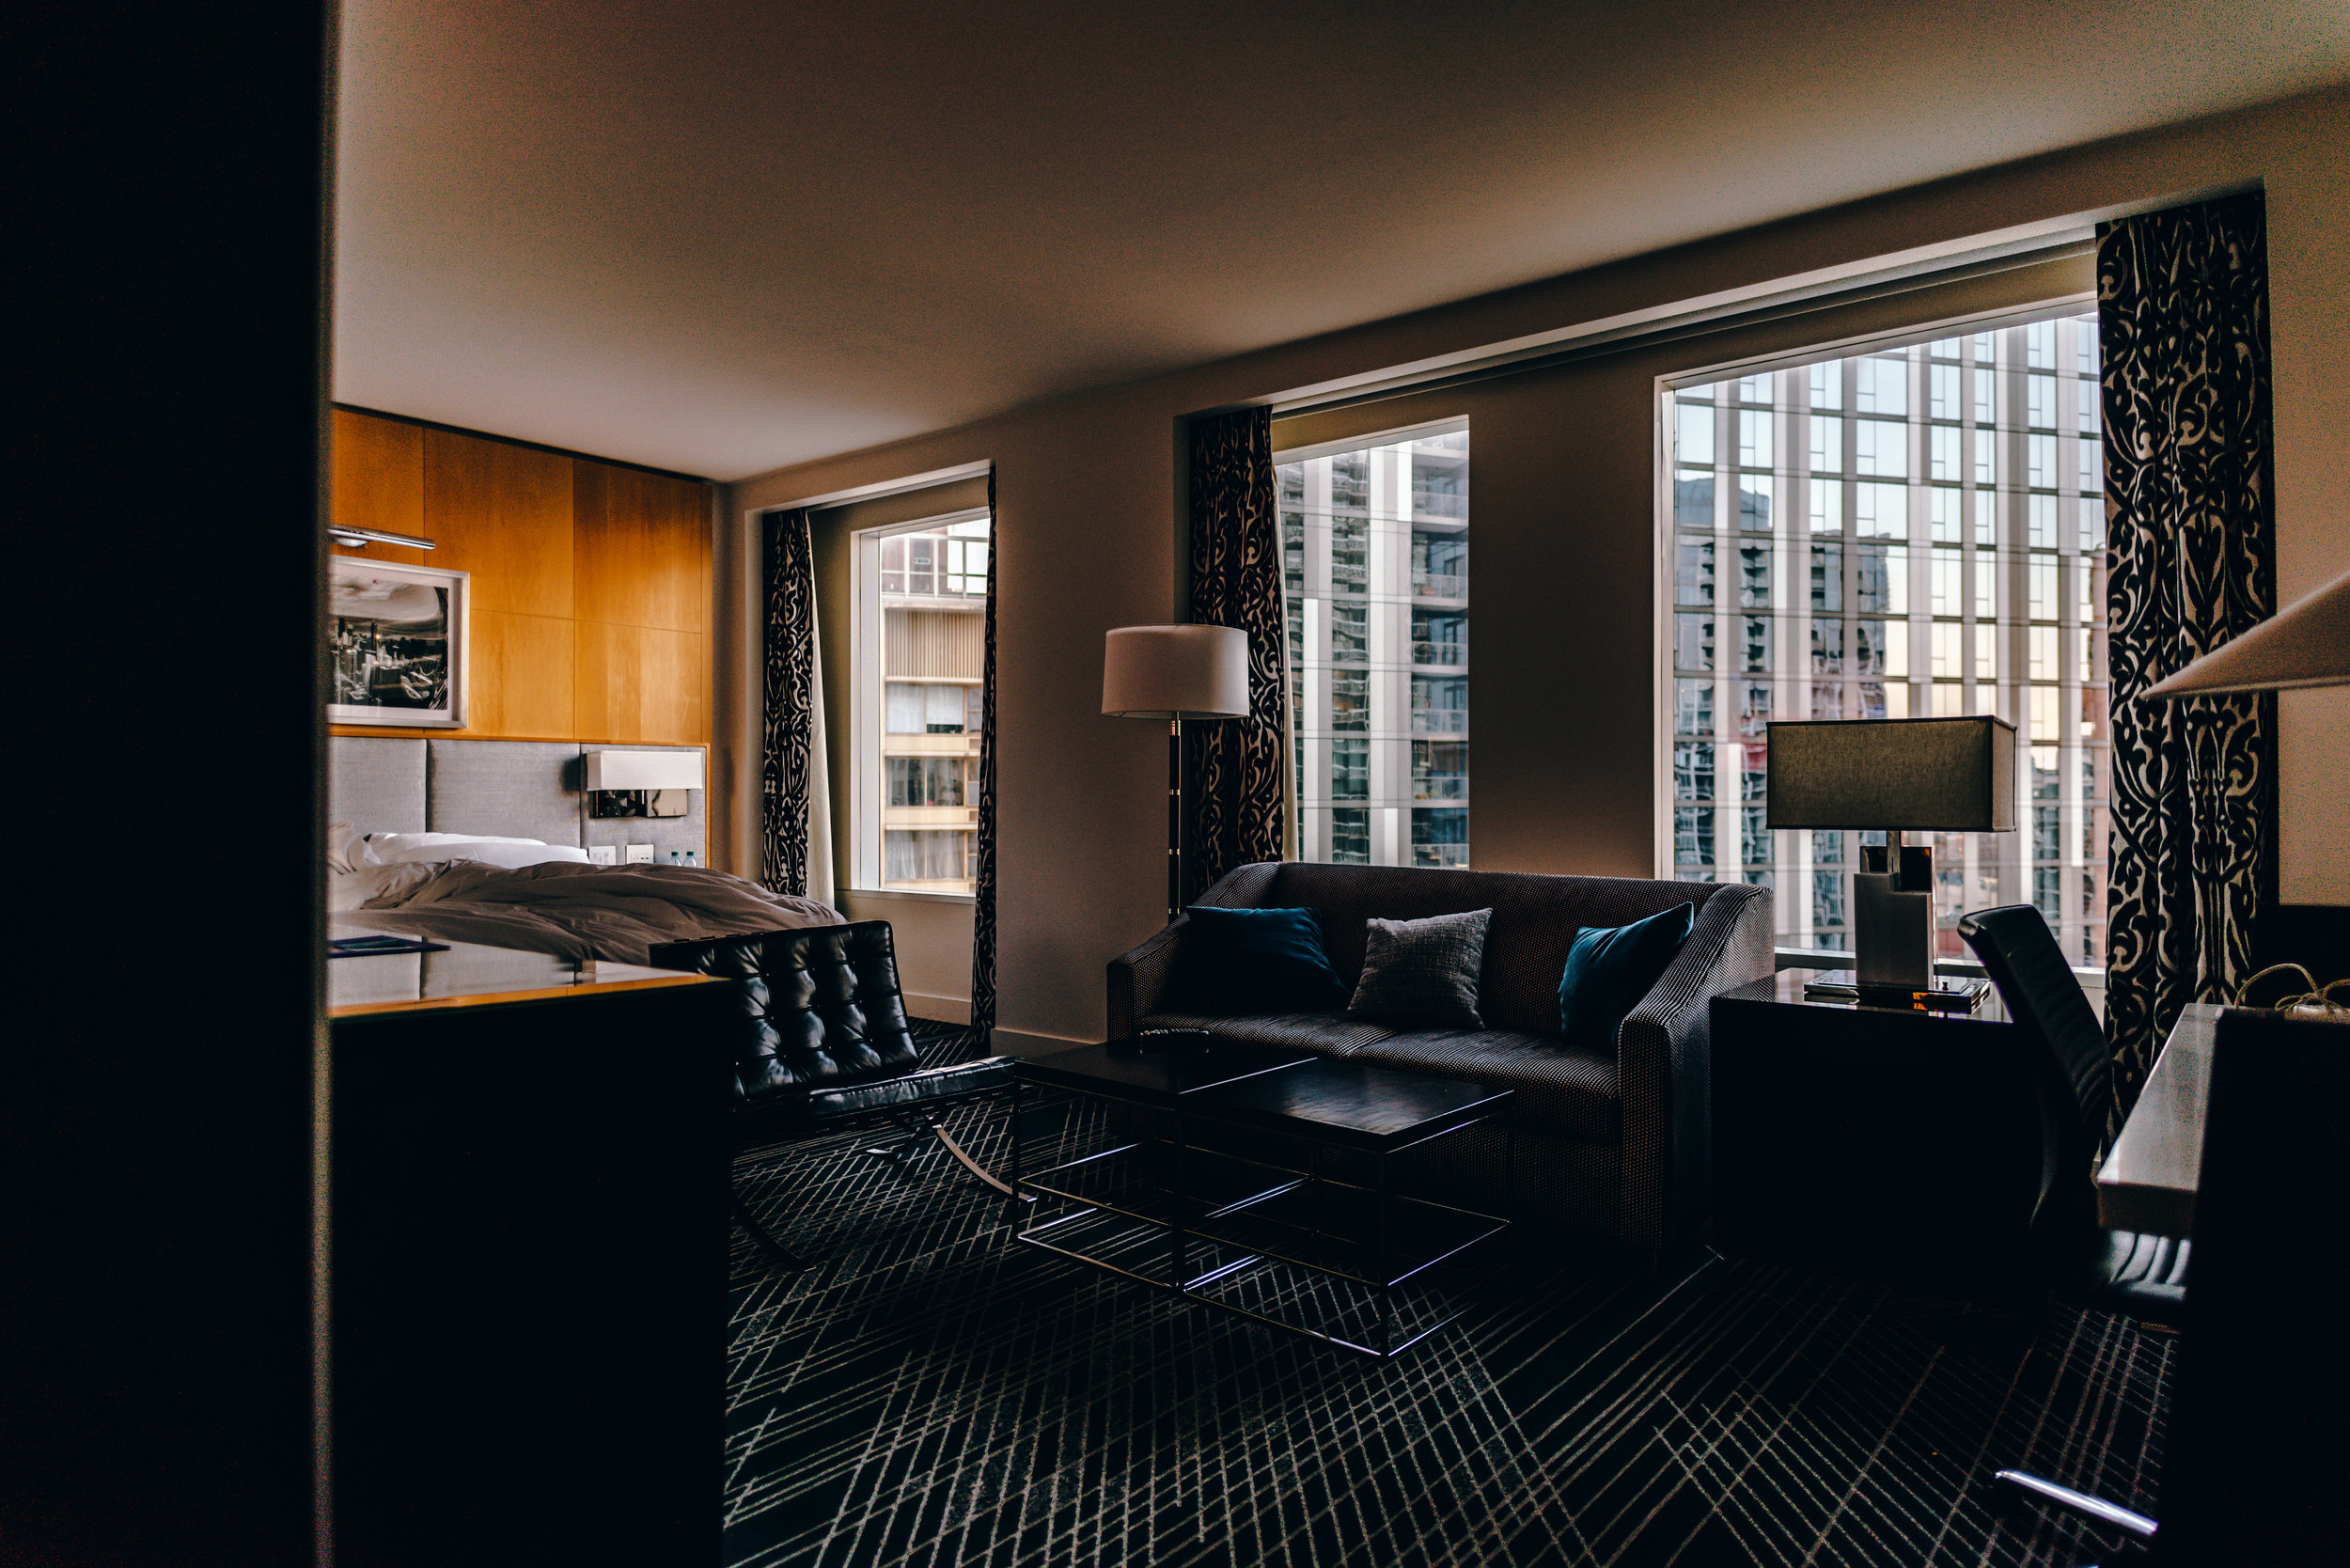 sofitel-chicago-by-lisa-linh